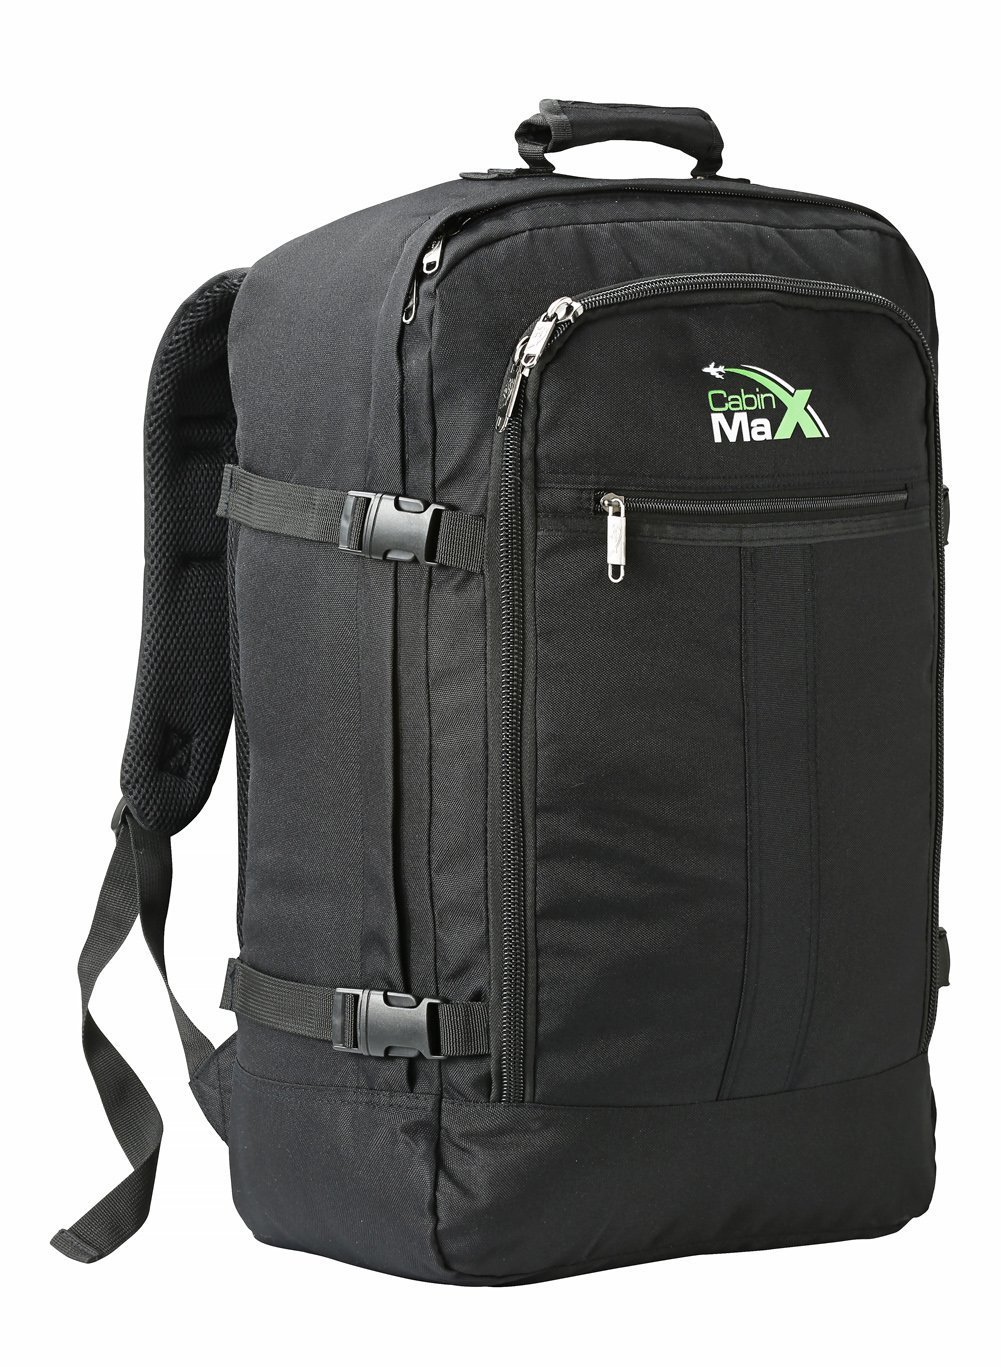 Cabin Max Backpack Flight Approved Carry On Bag Massive 44 litre ...